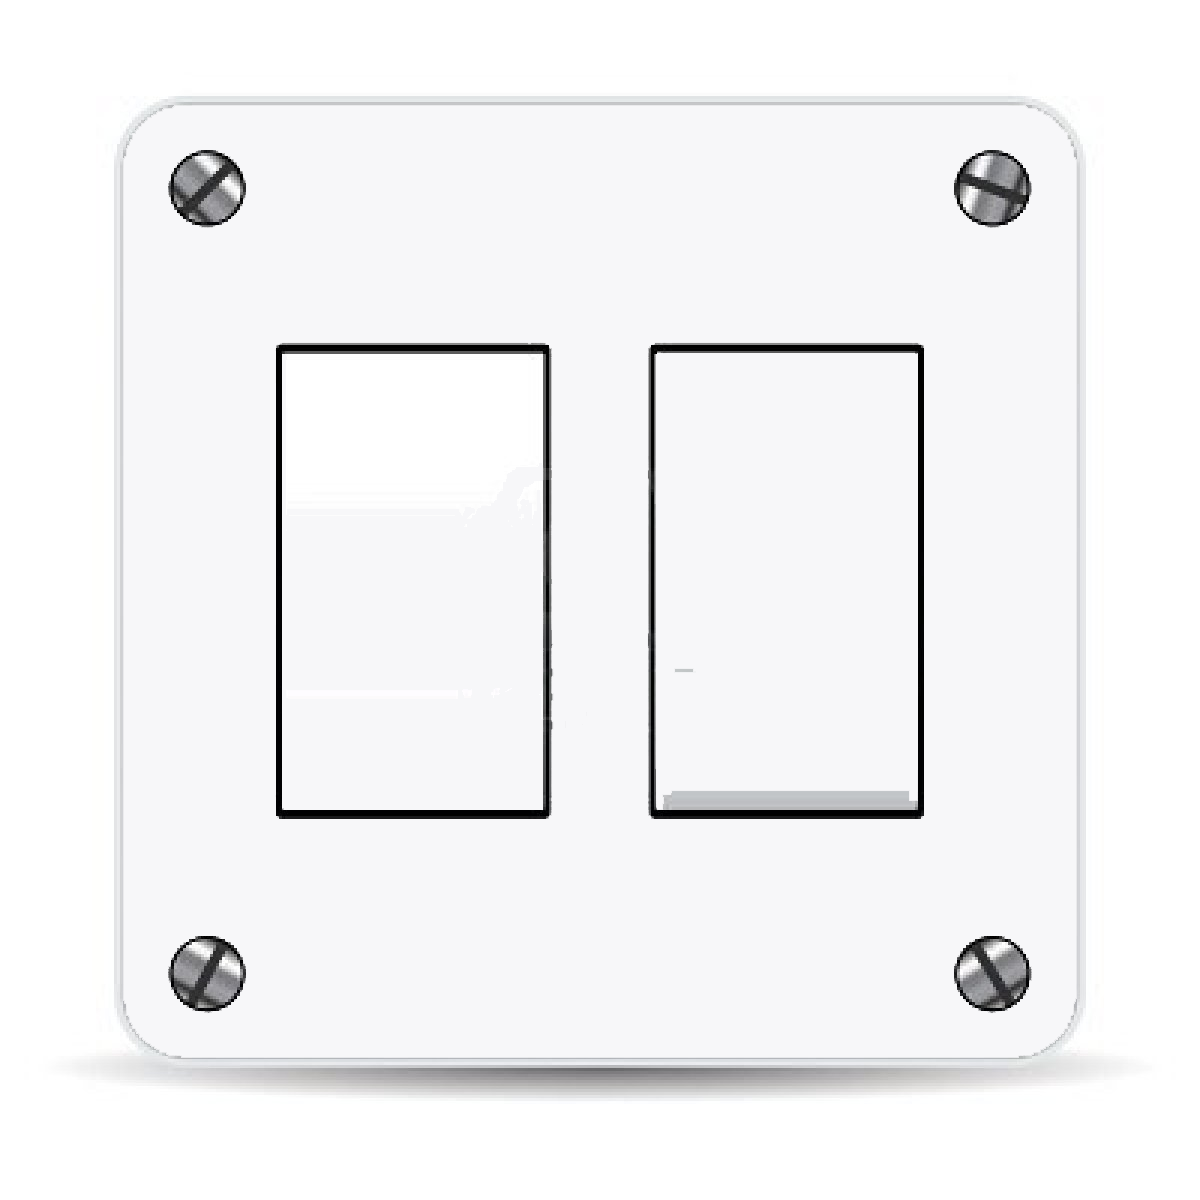 Light switch free images at clker vector clip art online light switch image sciox Gallery